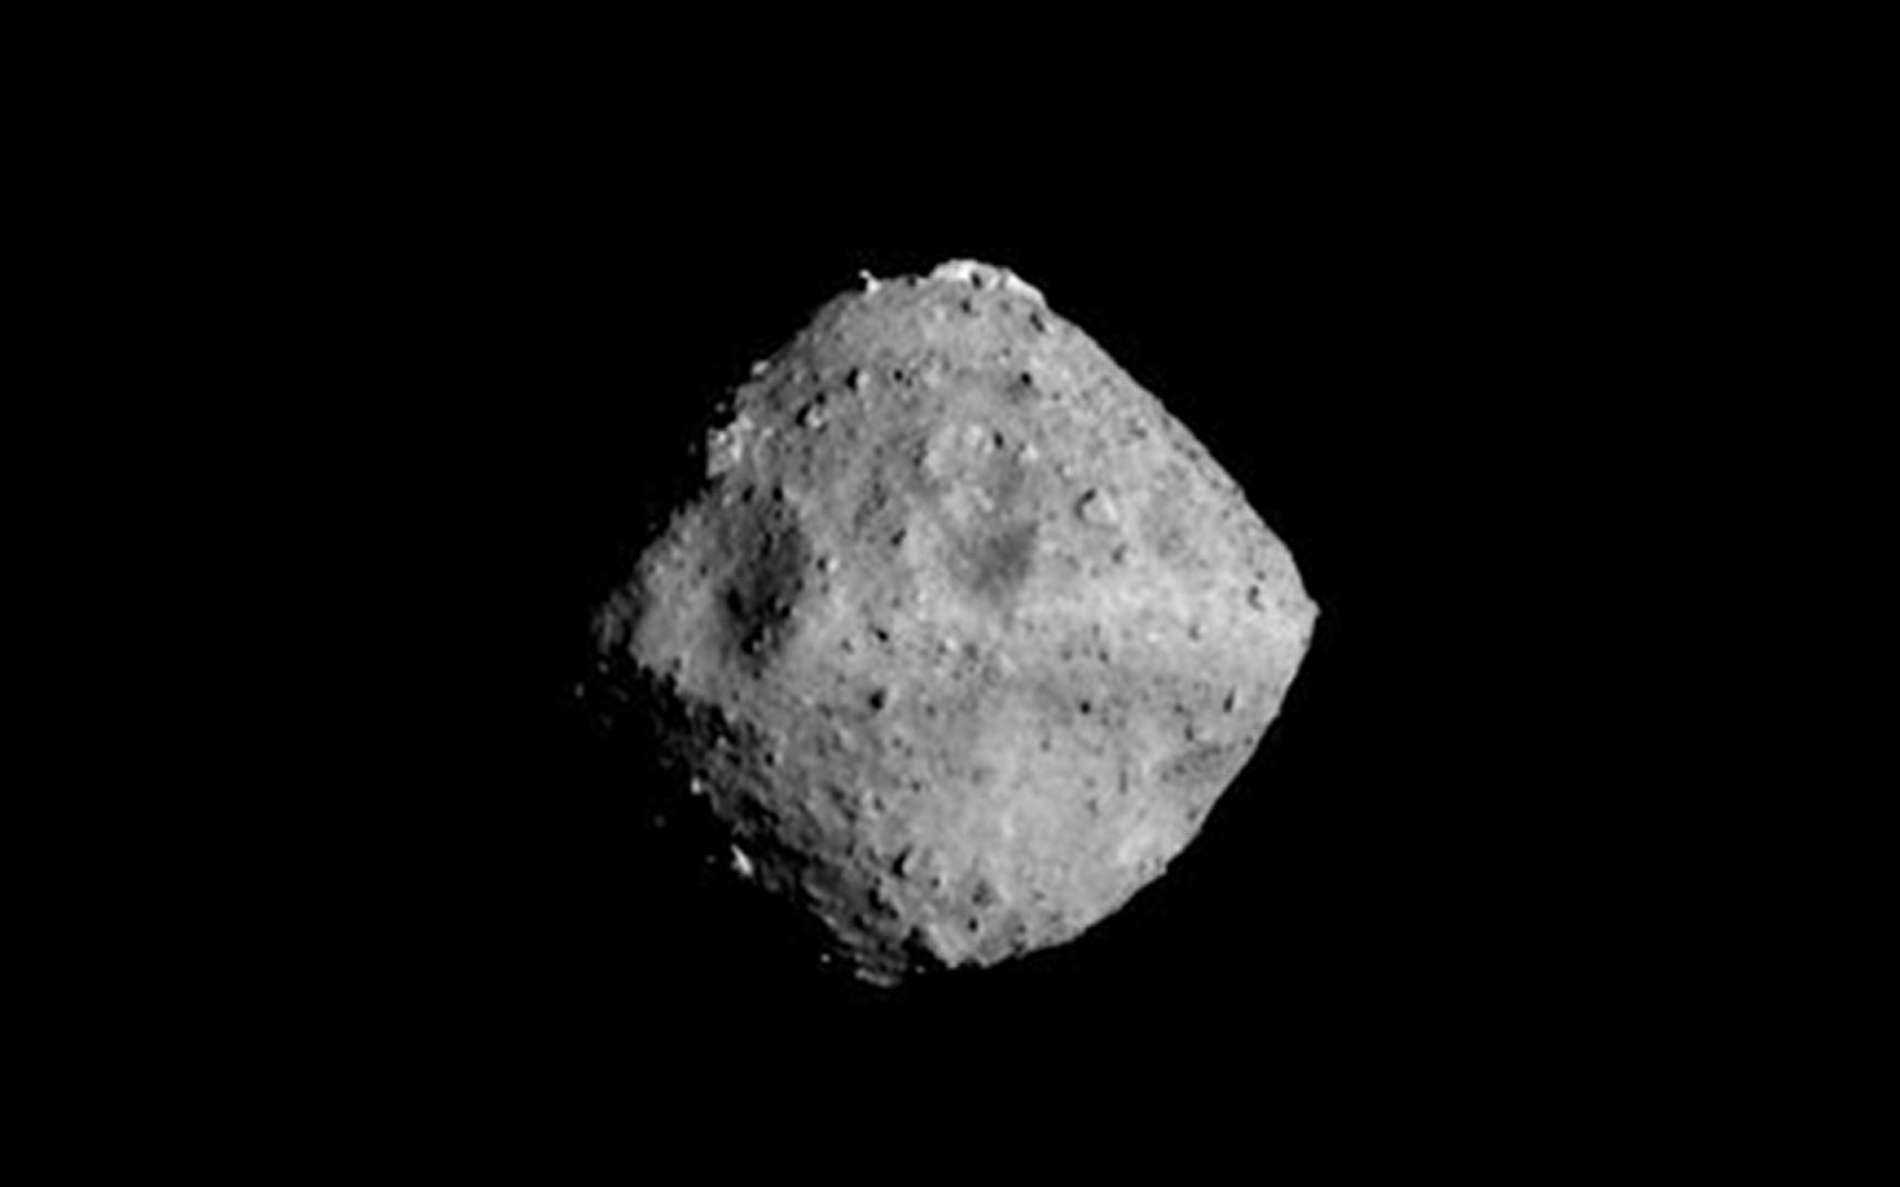 L'astéroïde Ryugu photographié avec la caméra ONC-T (Optical Navigation Camera - Telescopic) quand Hayabusa-2 était à environ 40 km de sa cible. © Jaxa, université de Tokyo, Kochi University, Rikkyo University, Nagoya University, Chiba Institute of Technology, Meiji University, Aizu University, AIST